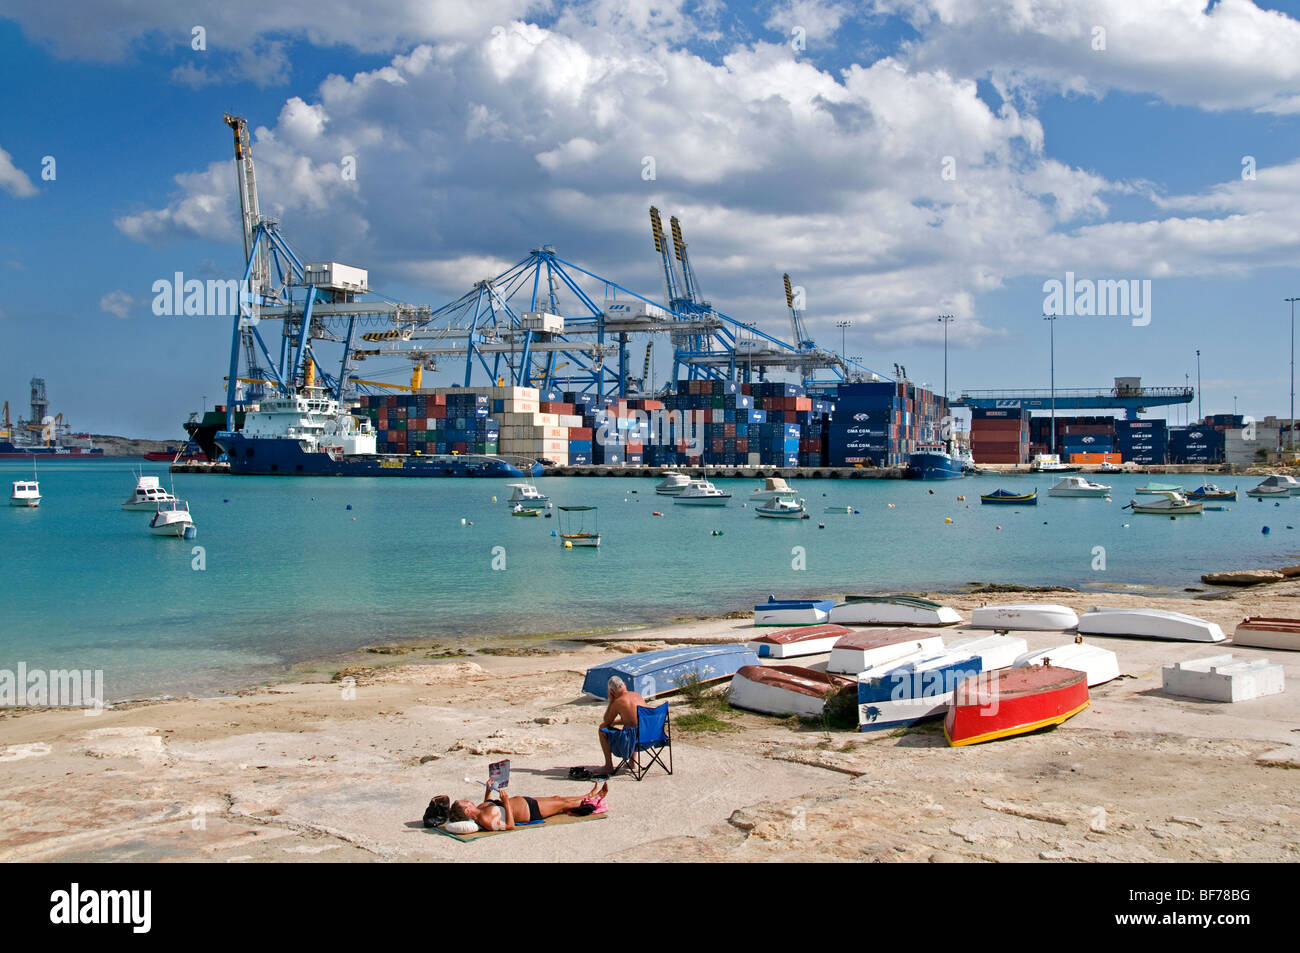 Port Port Salina Bay Malte Malte Conteneurs Photo Stock